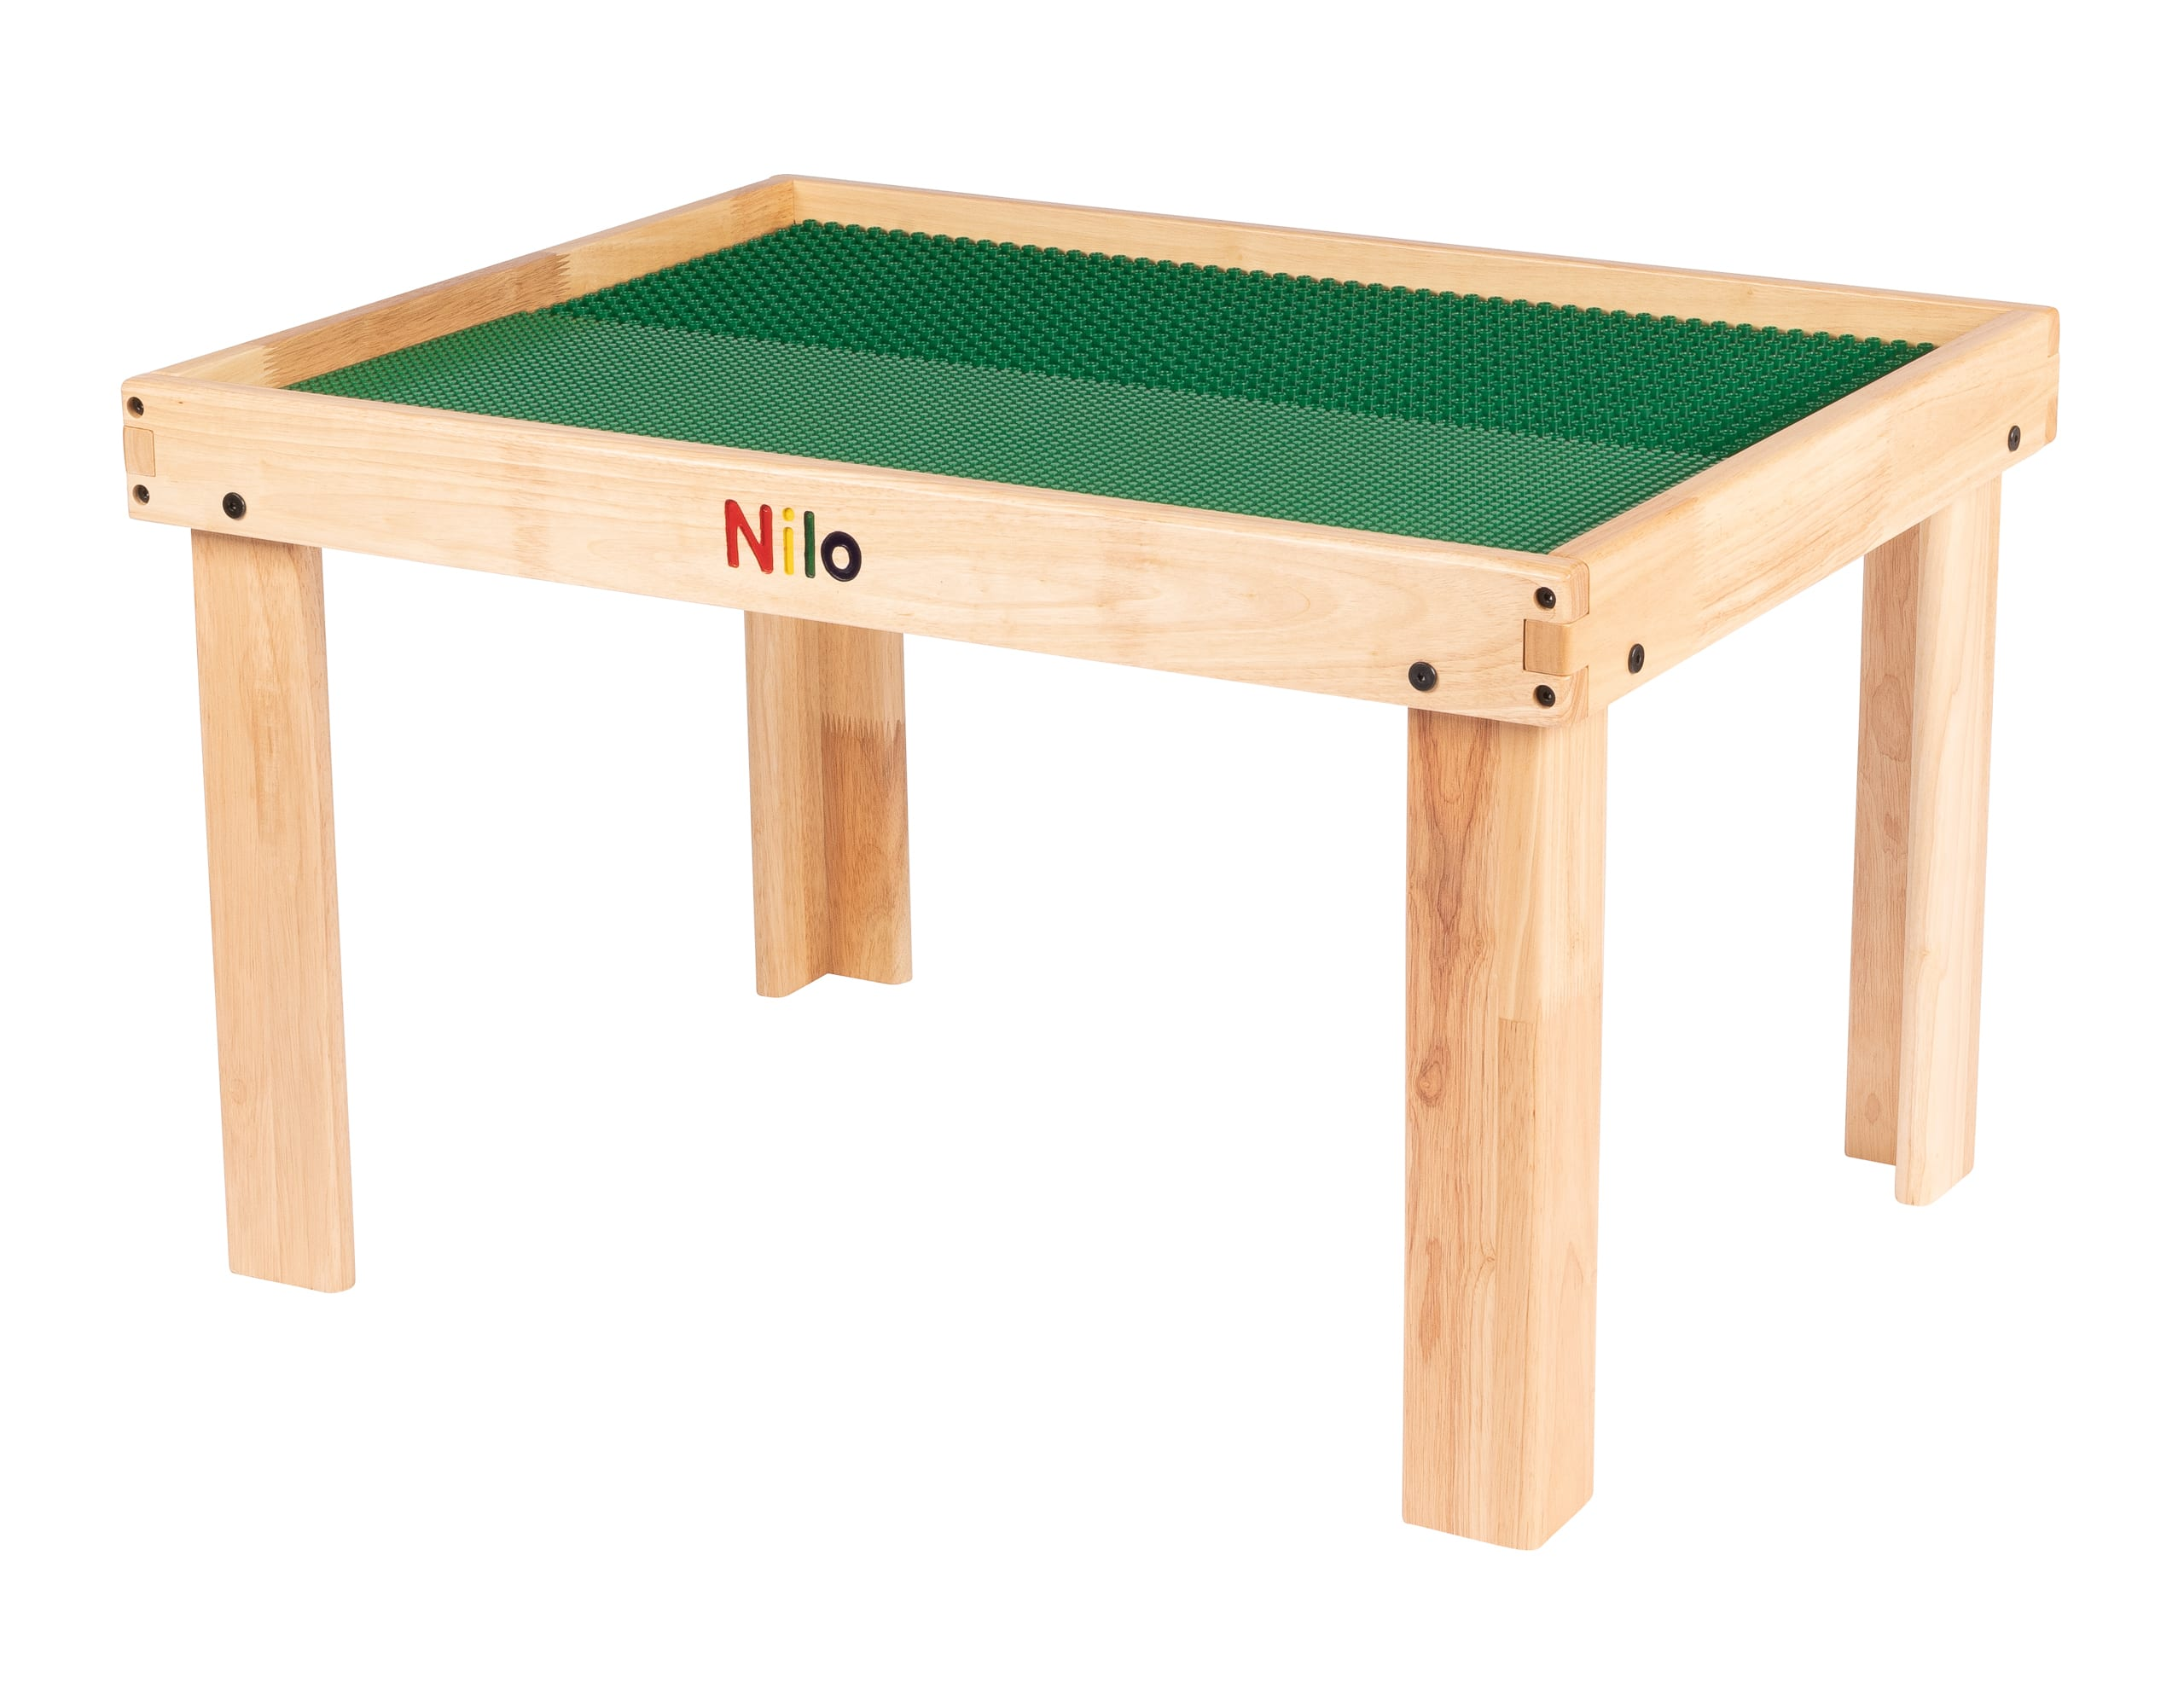 Nilo lego duplo table shown with two green Nilo double-sided Lego Duplo compatible baseplates